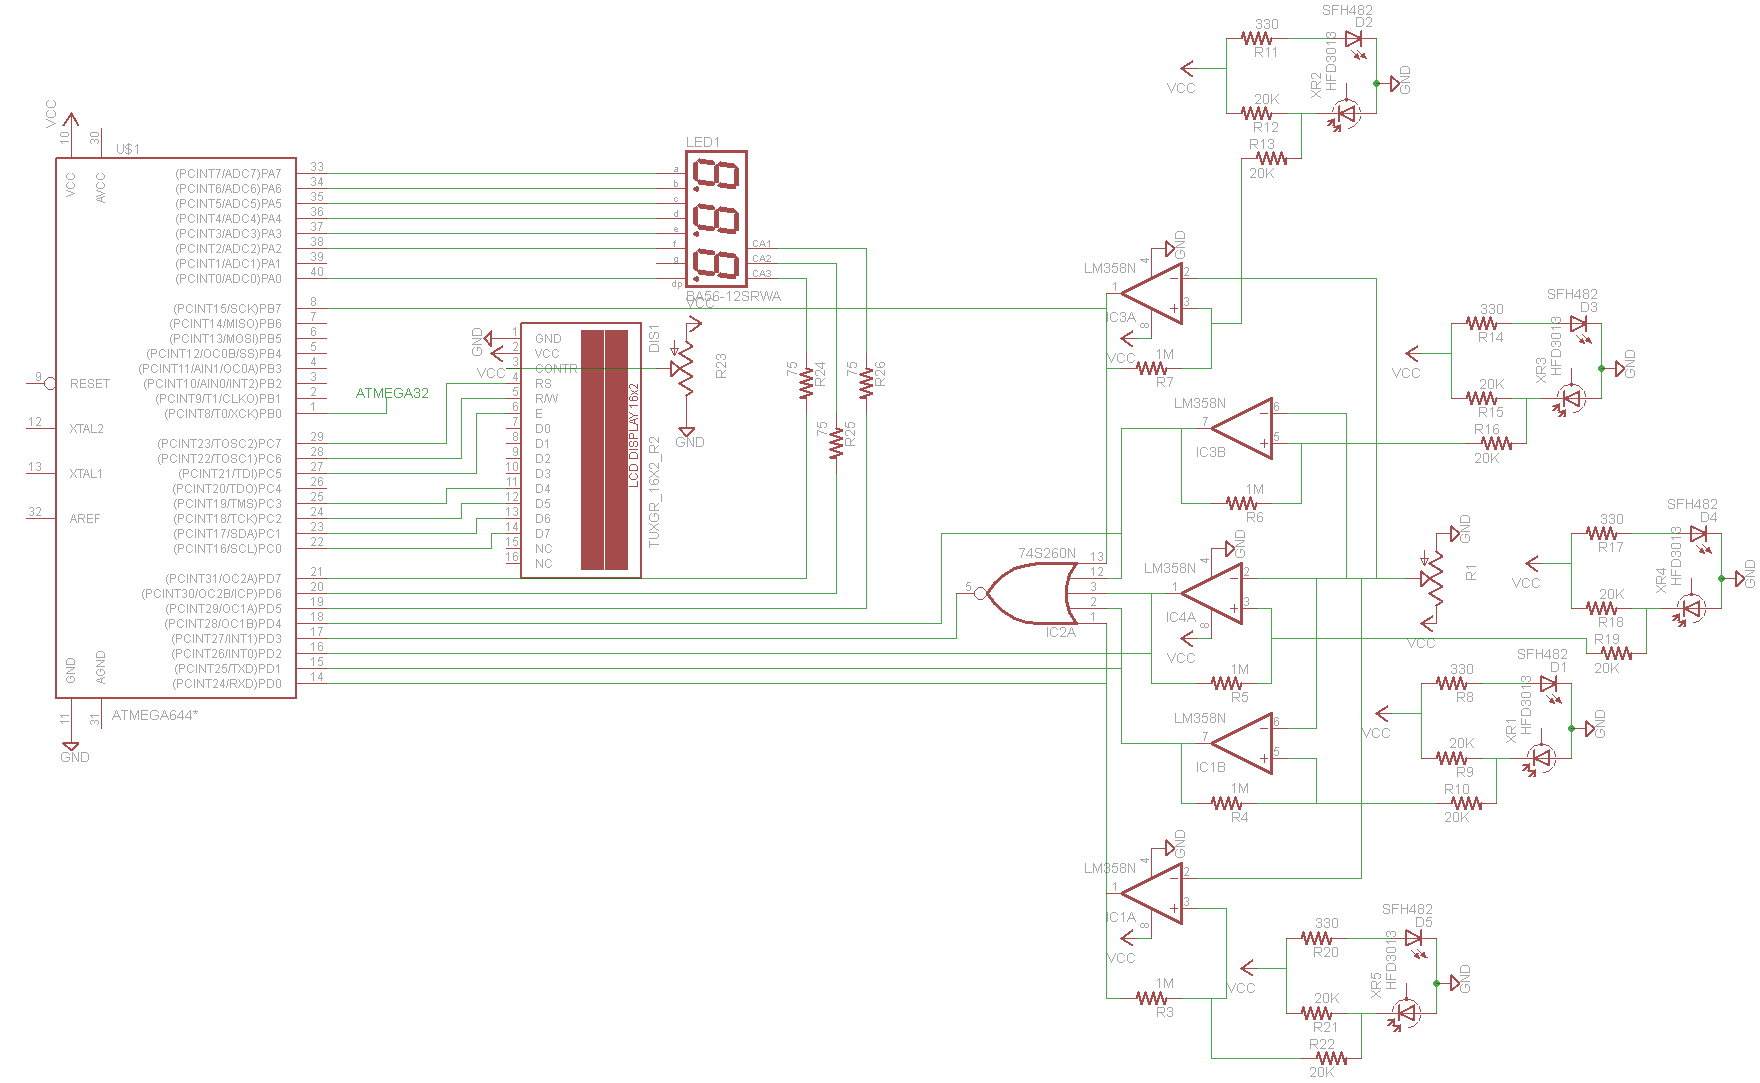 final schematics diagram